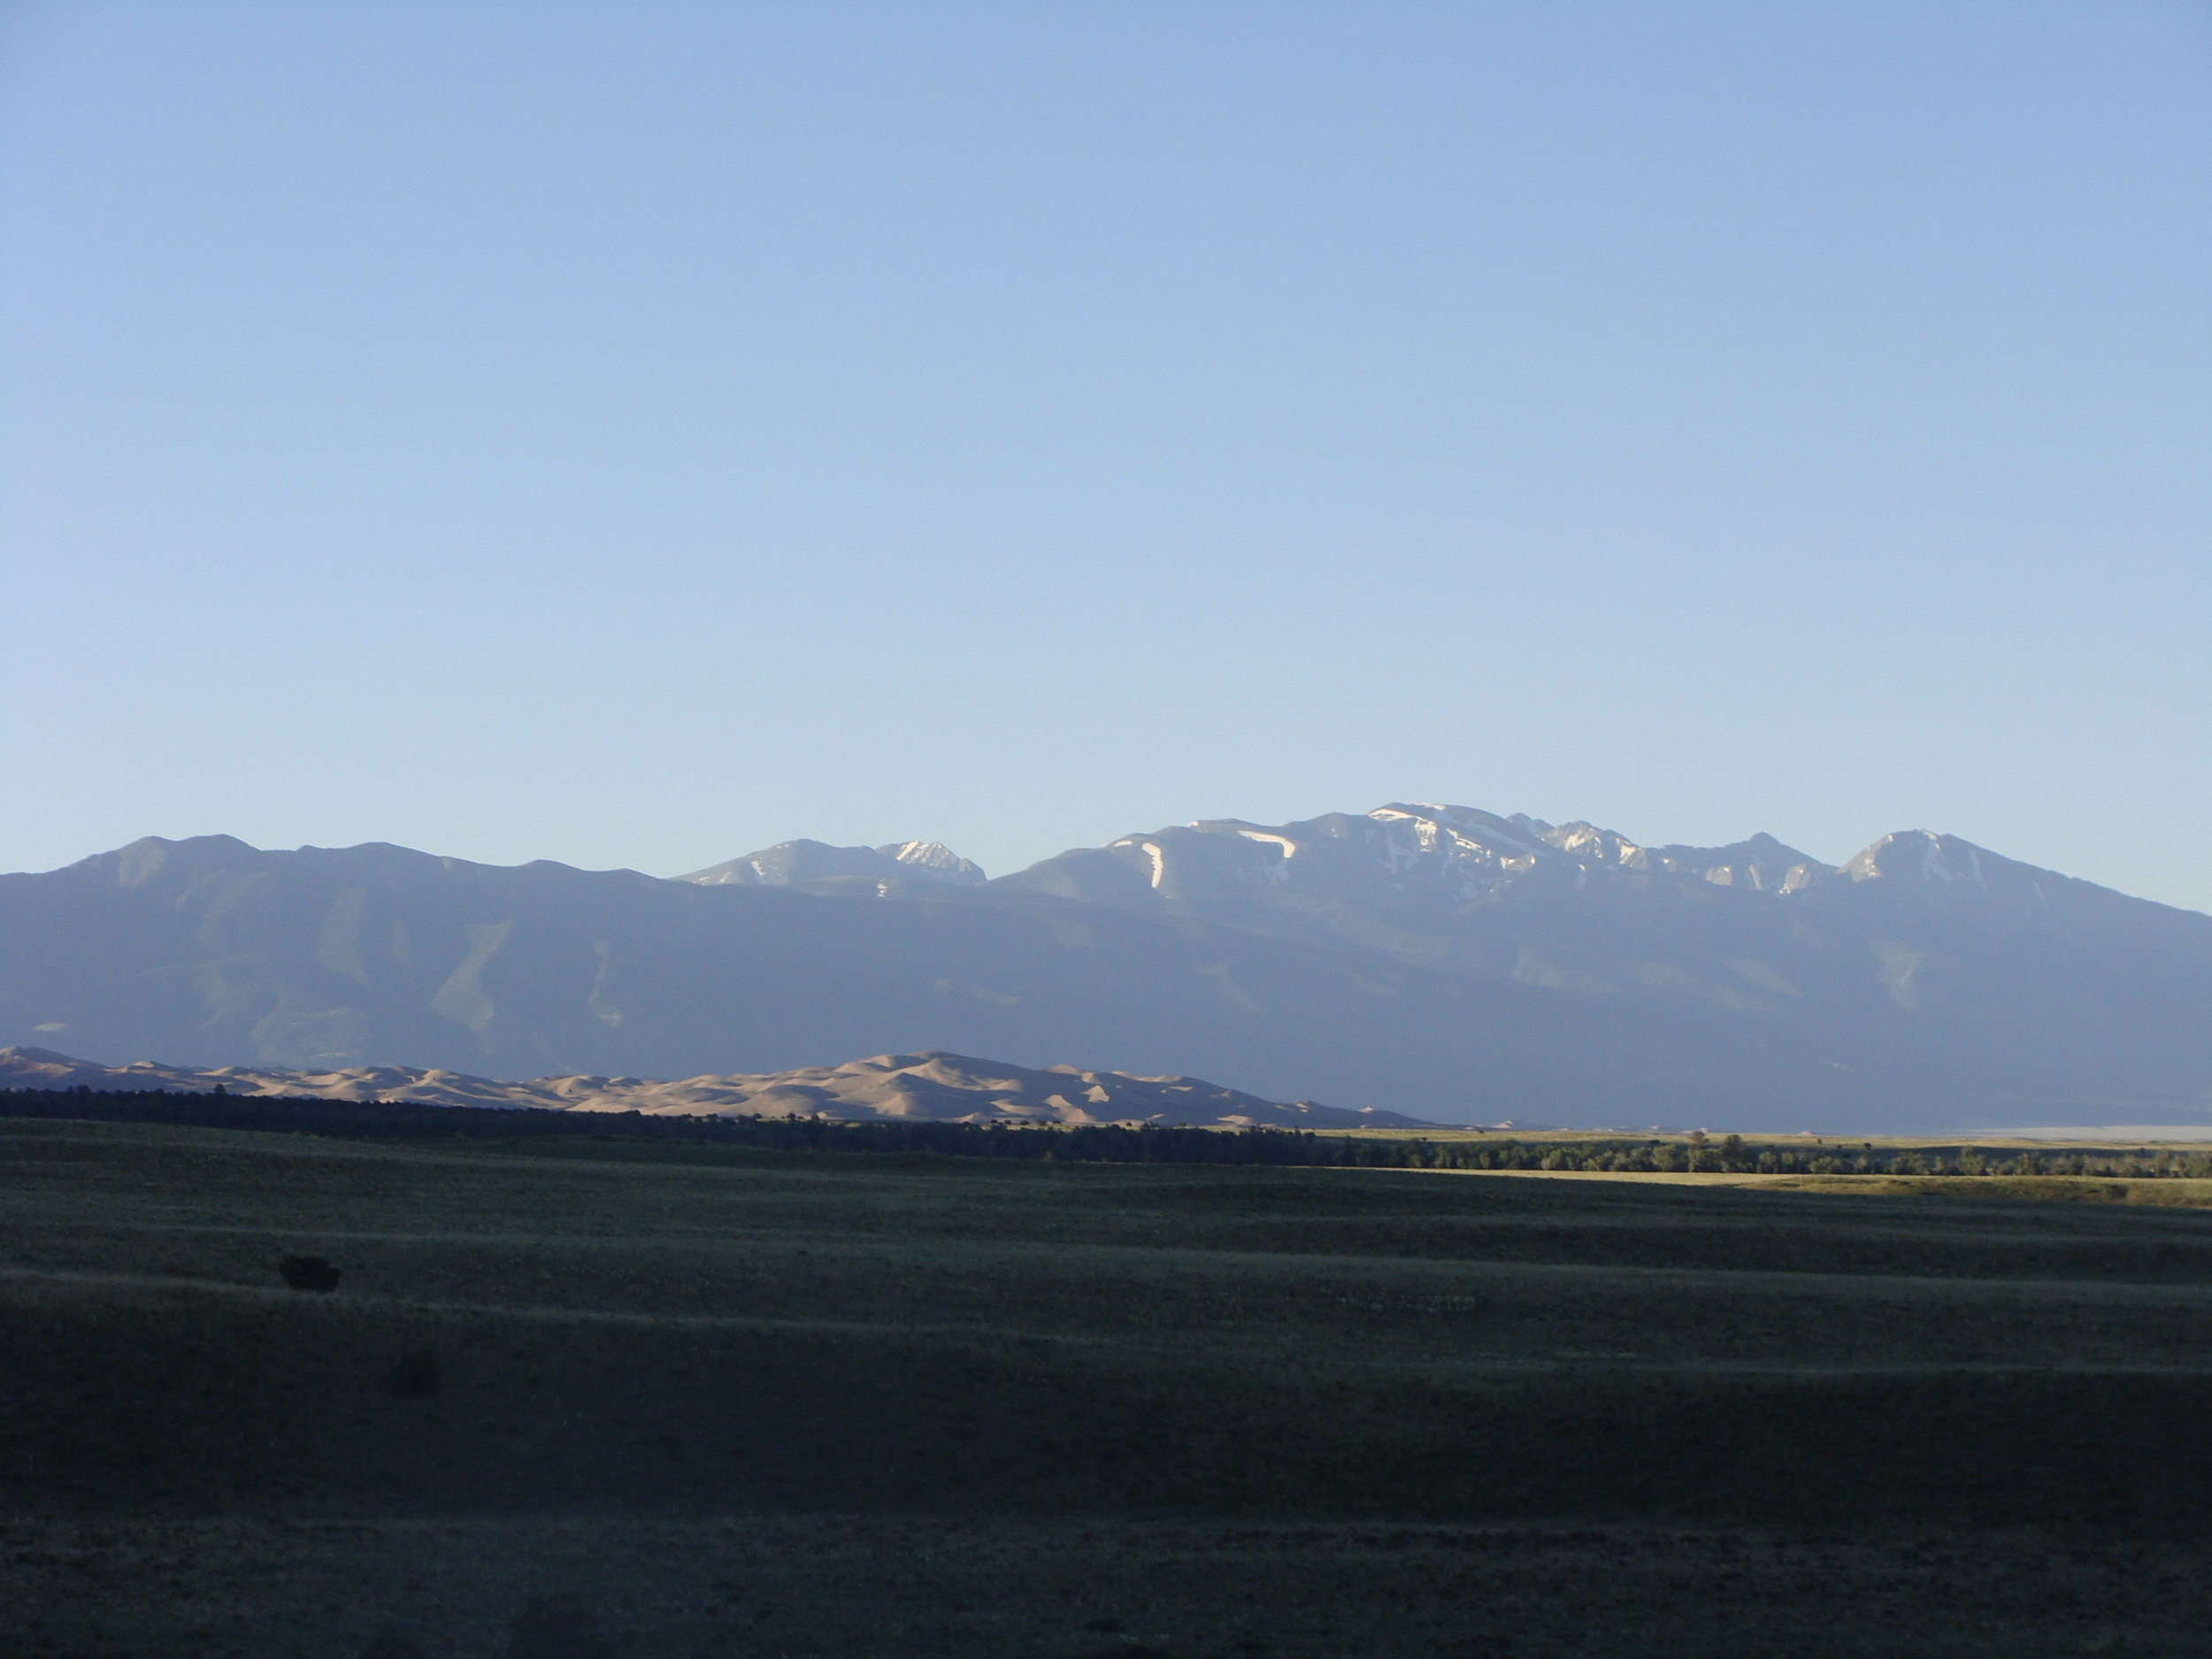 Early Morning Sun on the Great Sand Dunes